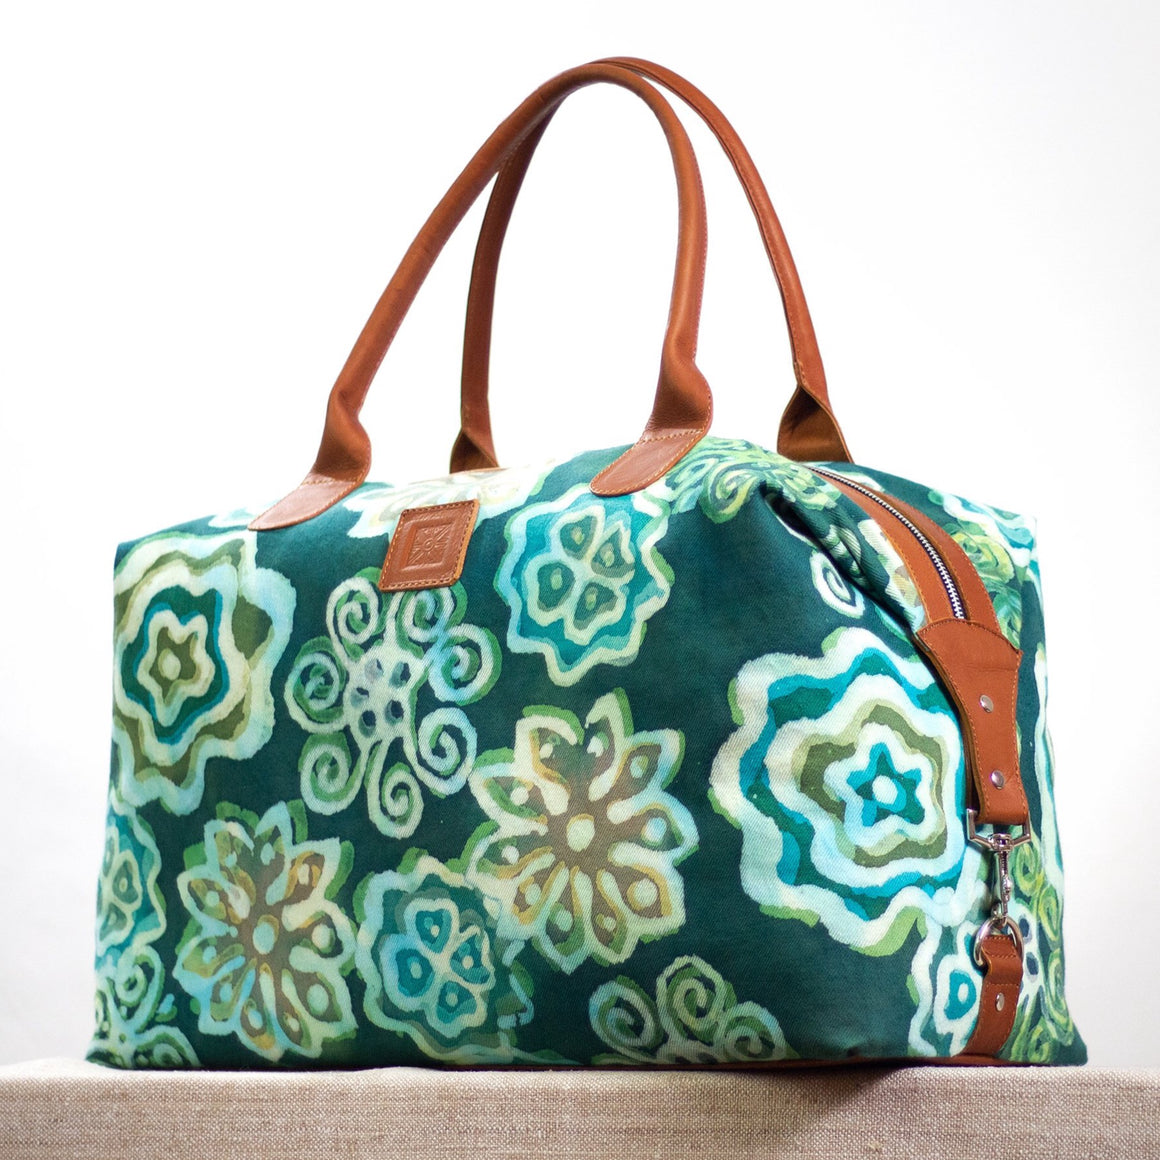 Intrepid Traveler - Convertible Tote - Green Goddess